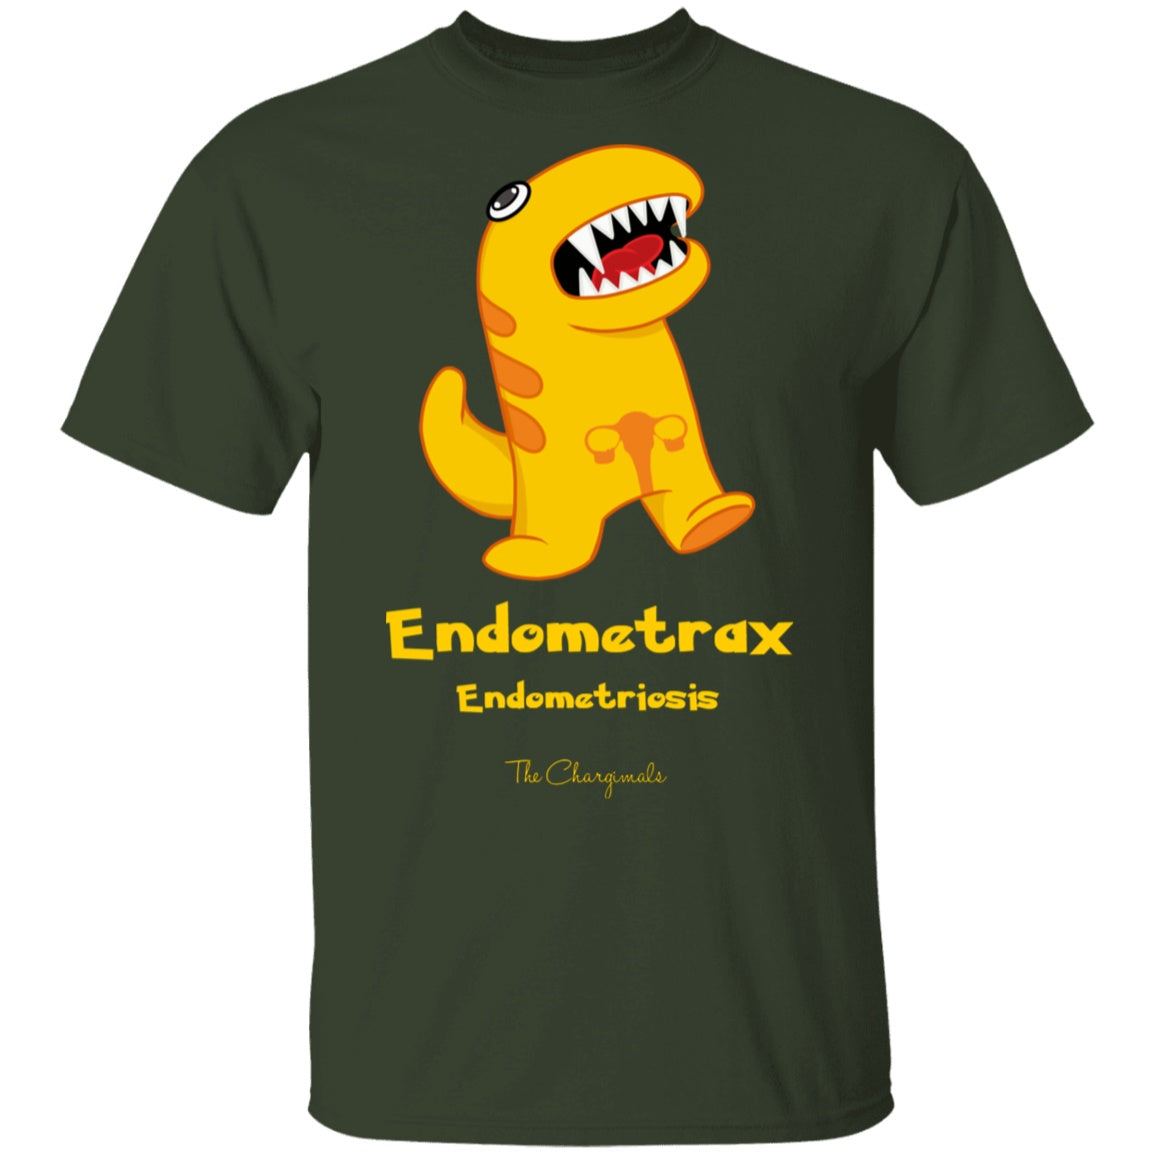 Sis the Endometriosis Monster Shirt and a Hoodie - The Unchargeables